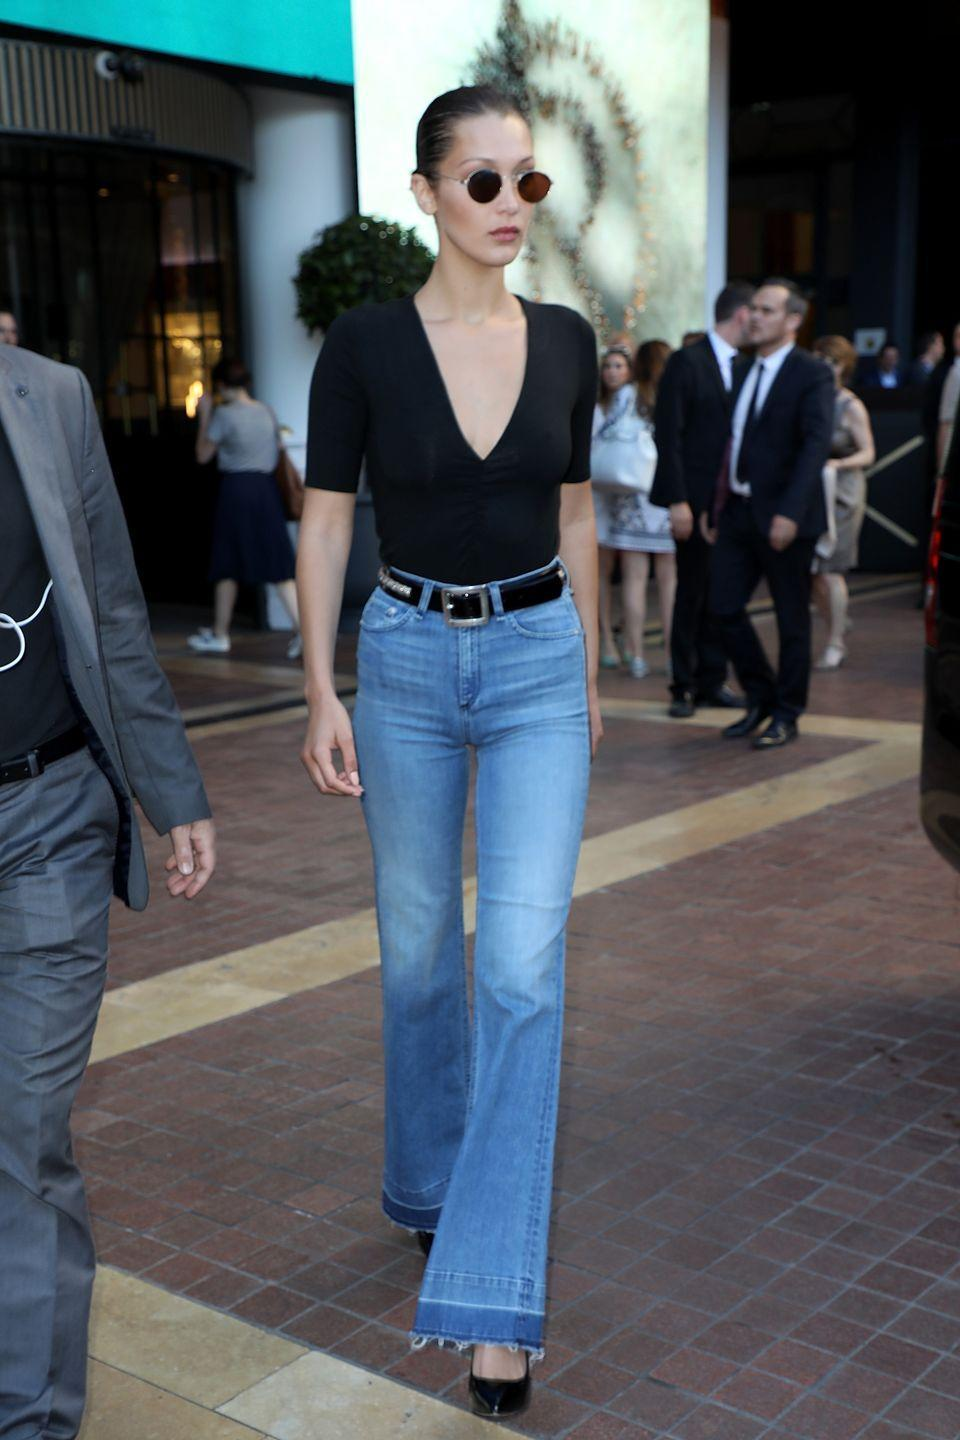 <p>In a deep V t-shirt, belted Rag & Bone flare jeans, black pumps and rounded sunglasses while out in Cannes. </p>